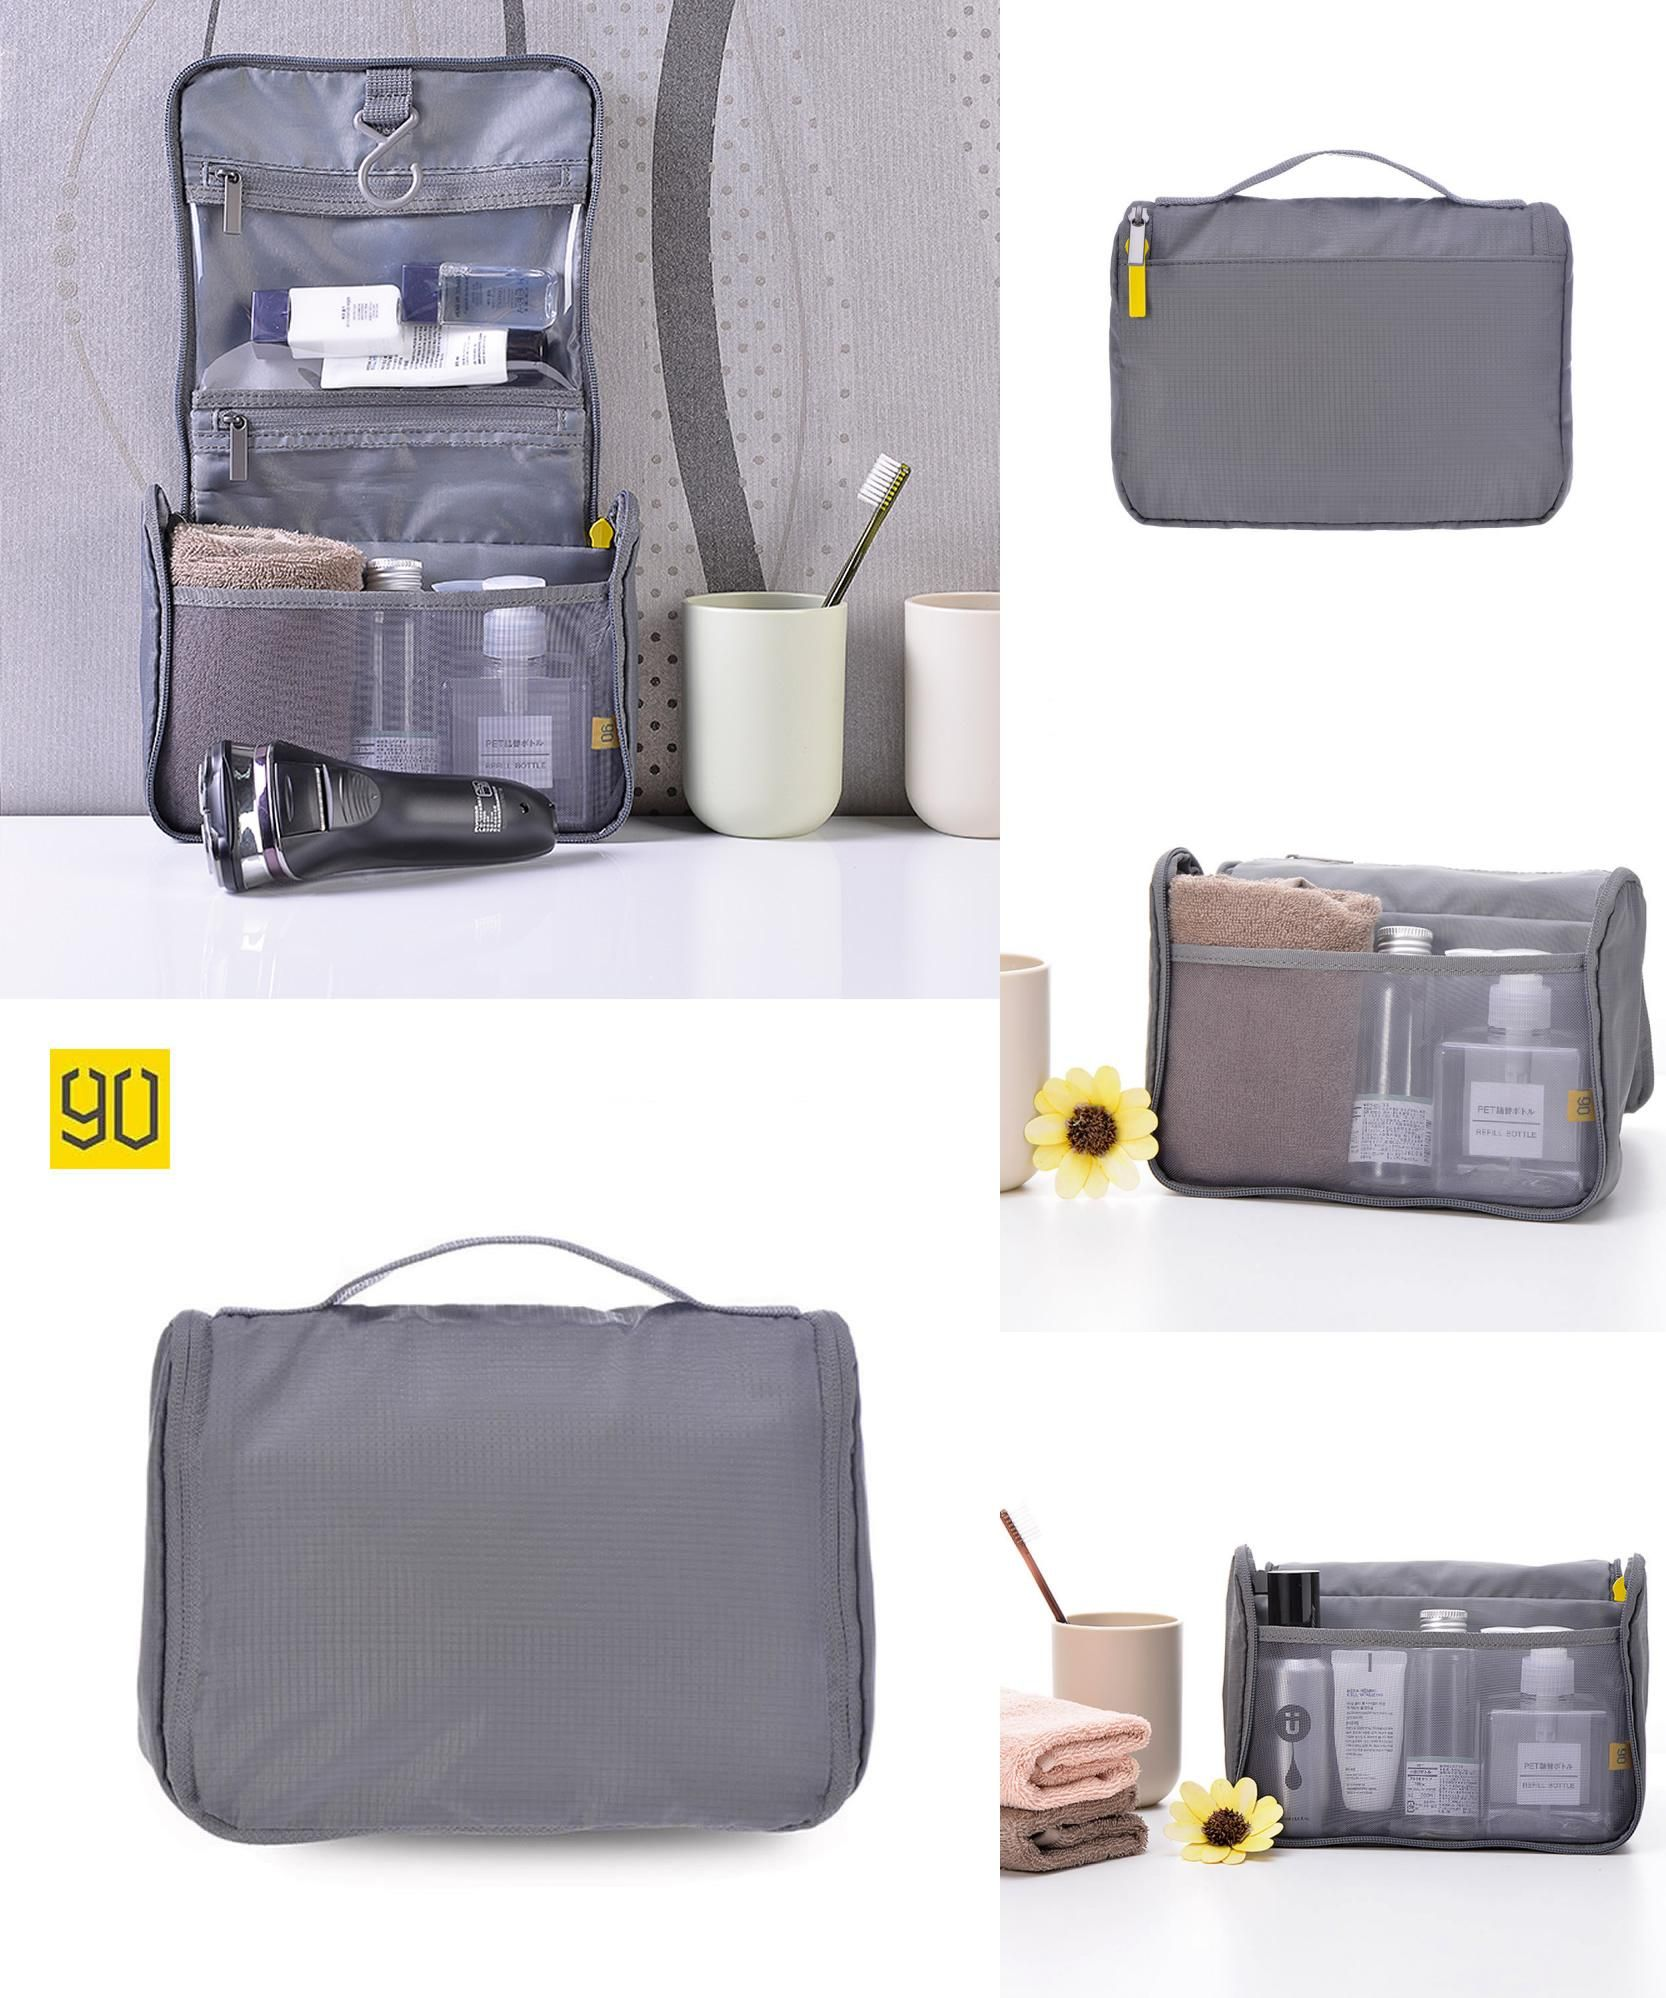 Visit to Buy  90 Points Travel Set High Quality Nylon Waterproof Portable Man  Toiletry 685db5af49d23